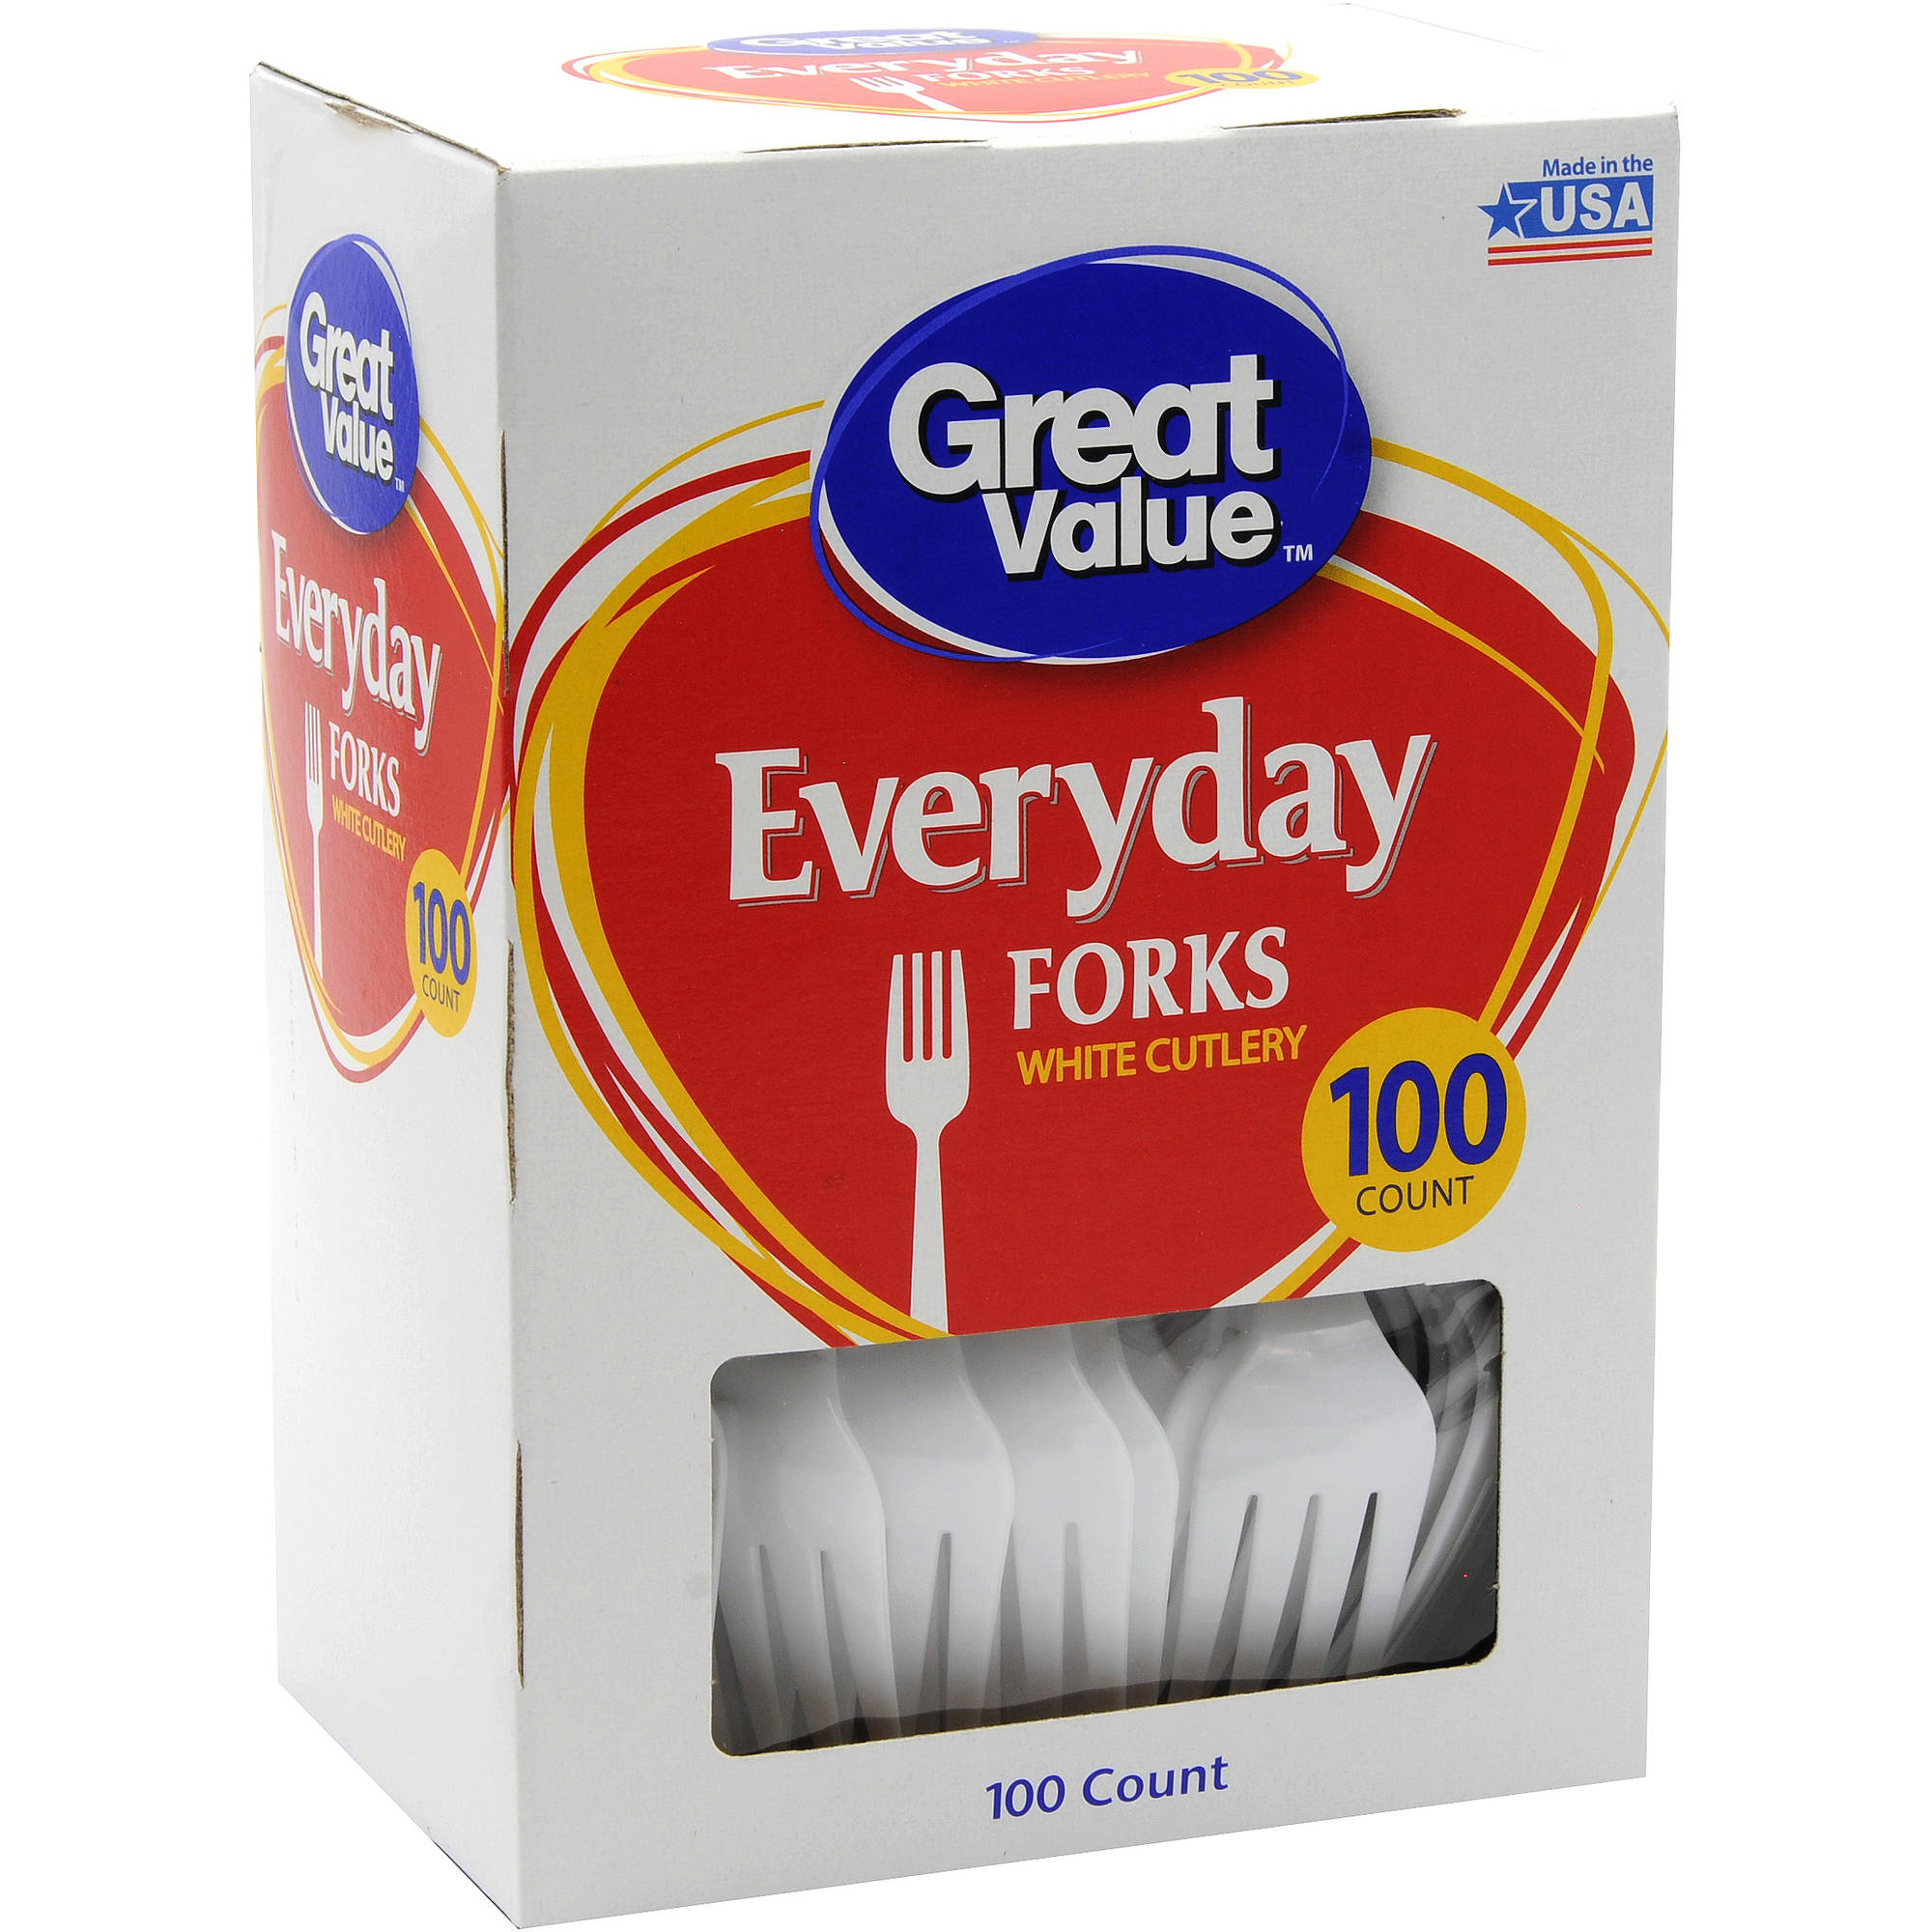 Great Value Everyday Forks, 100 ct